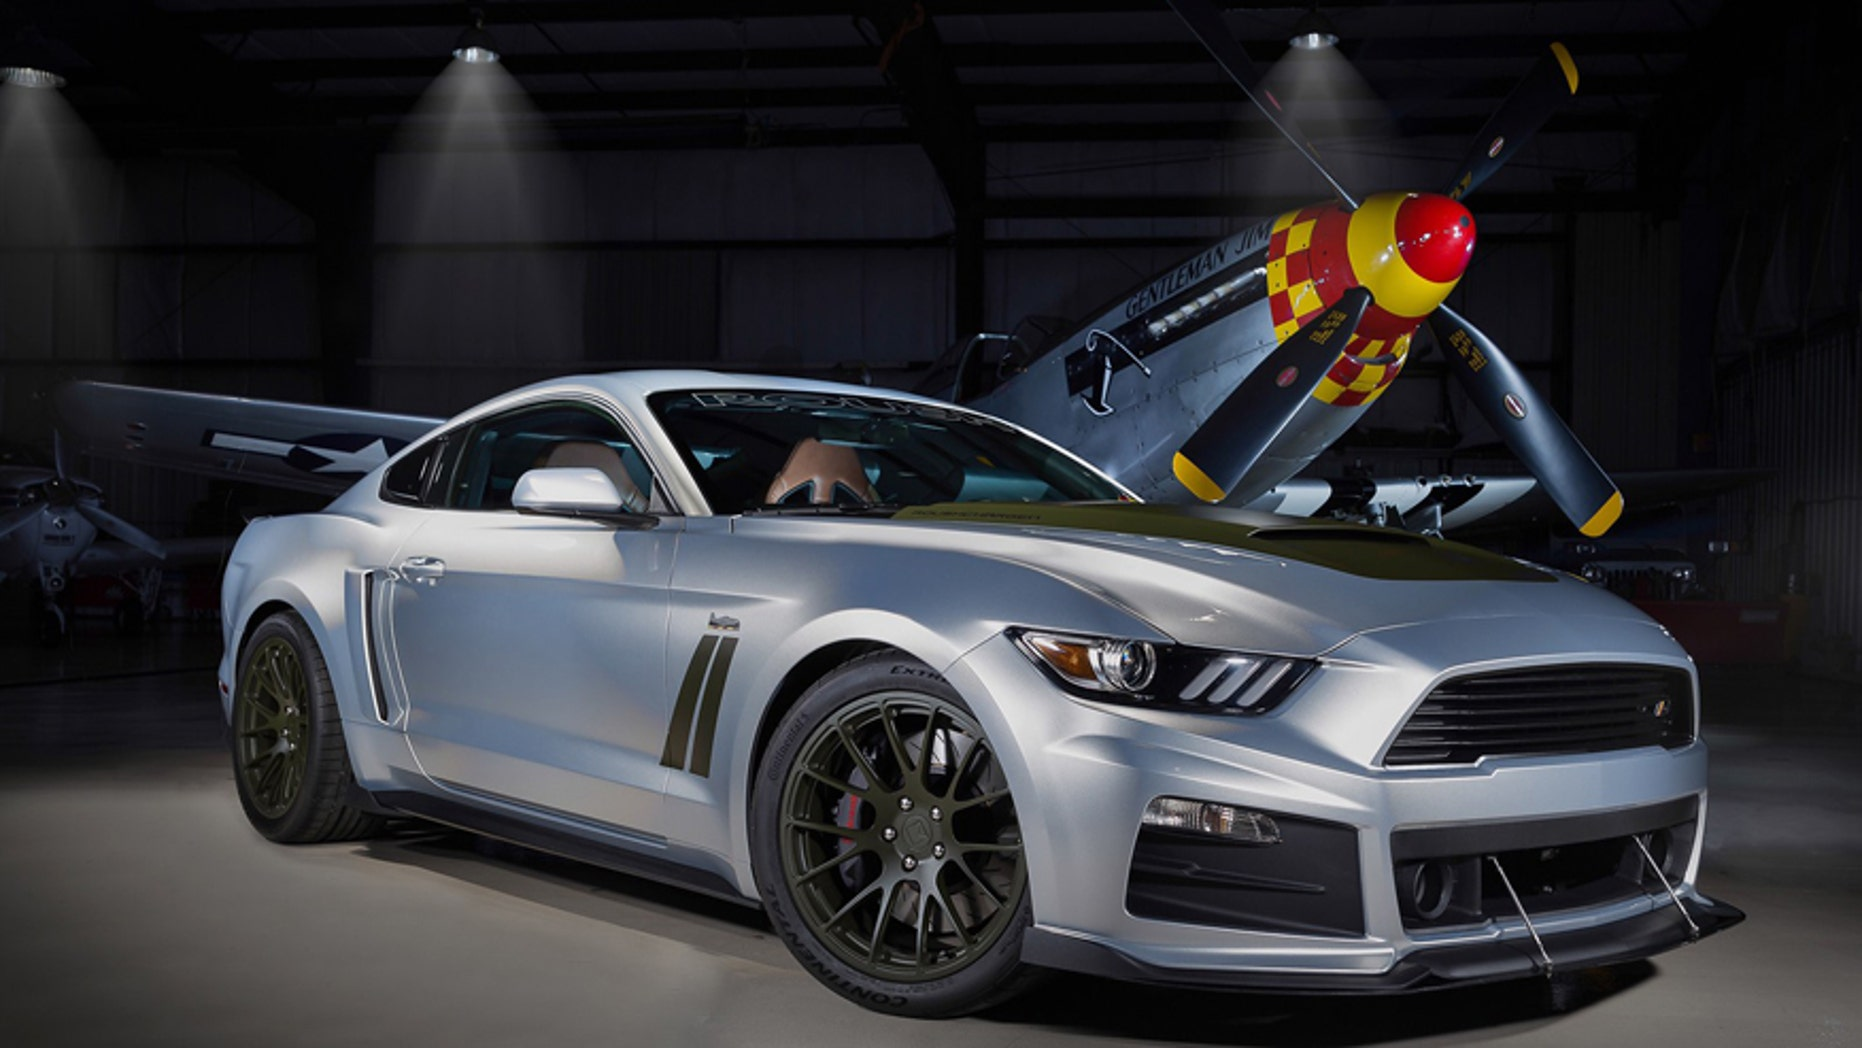 Roush P 51 Ford Mustang is ready for a dogfight with a Hellcat